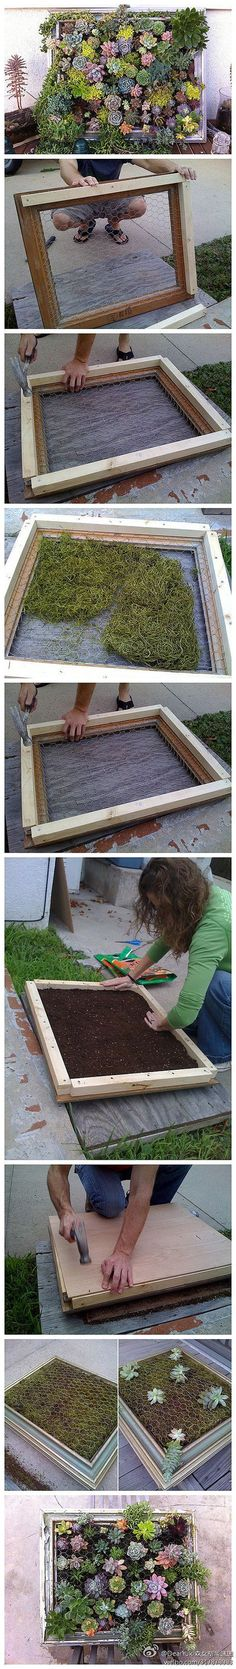 picture frame succulent planter {vertical planters for salad greens & herbs, too} Más